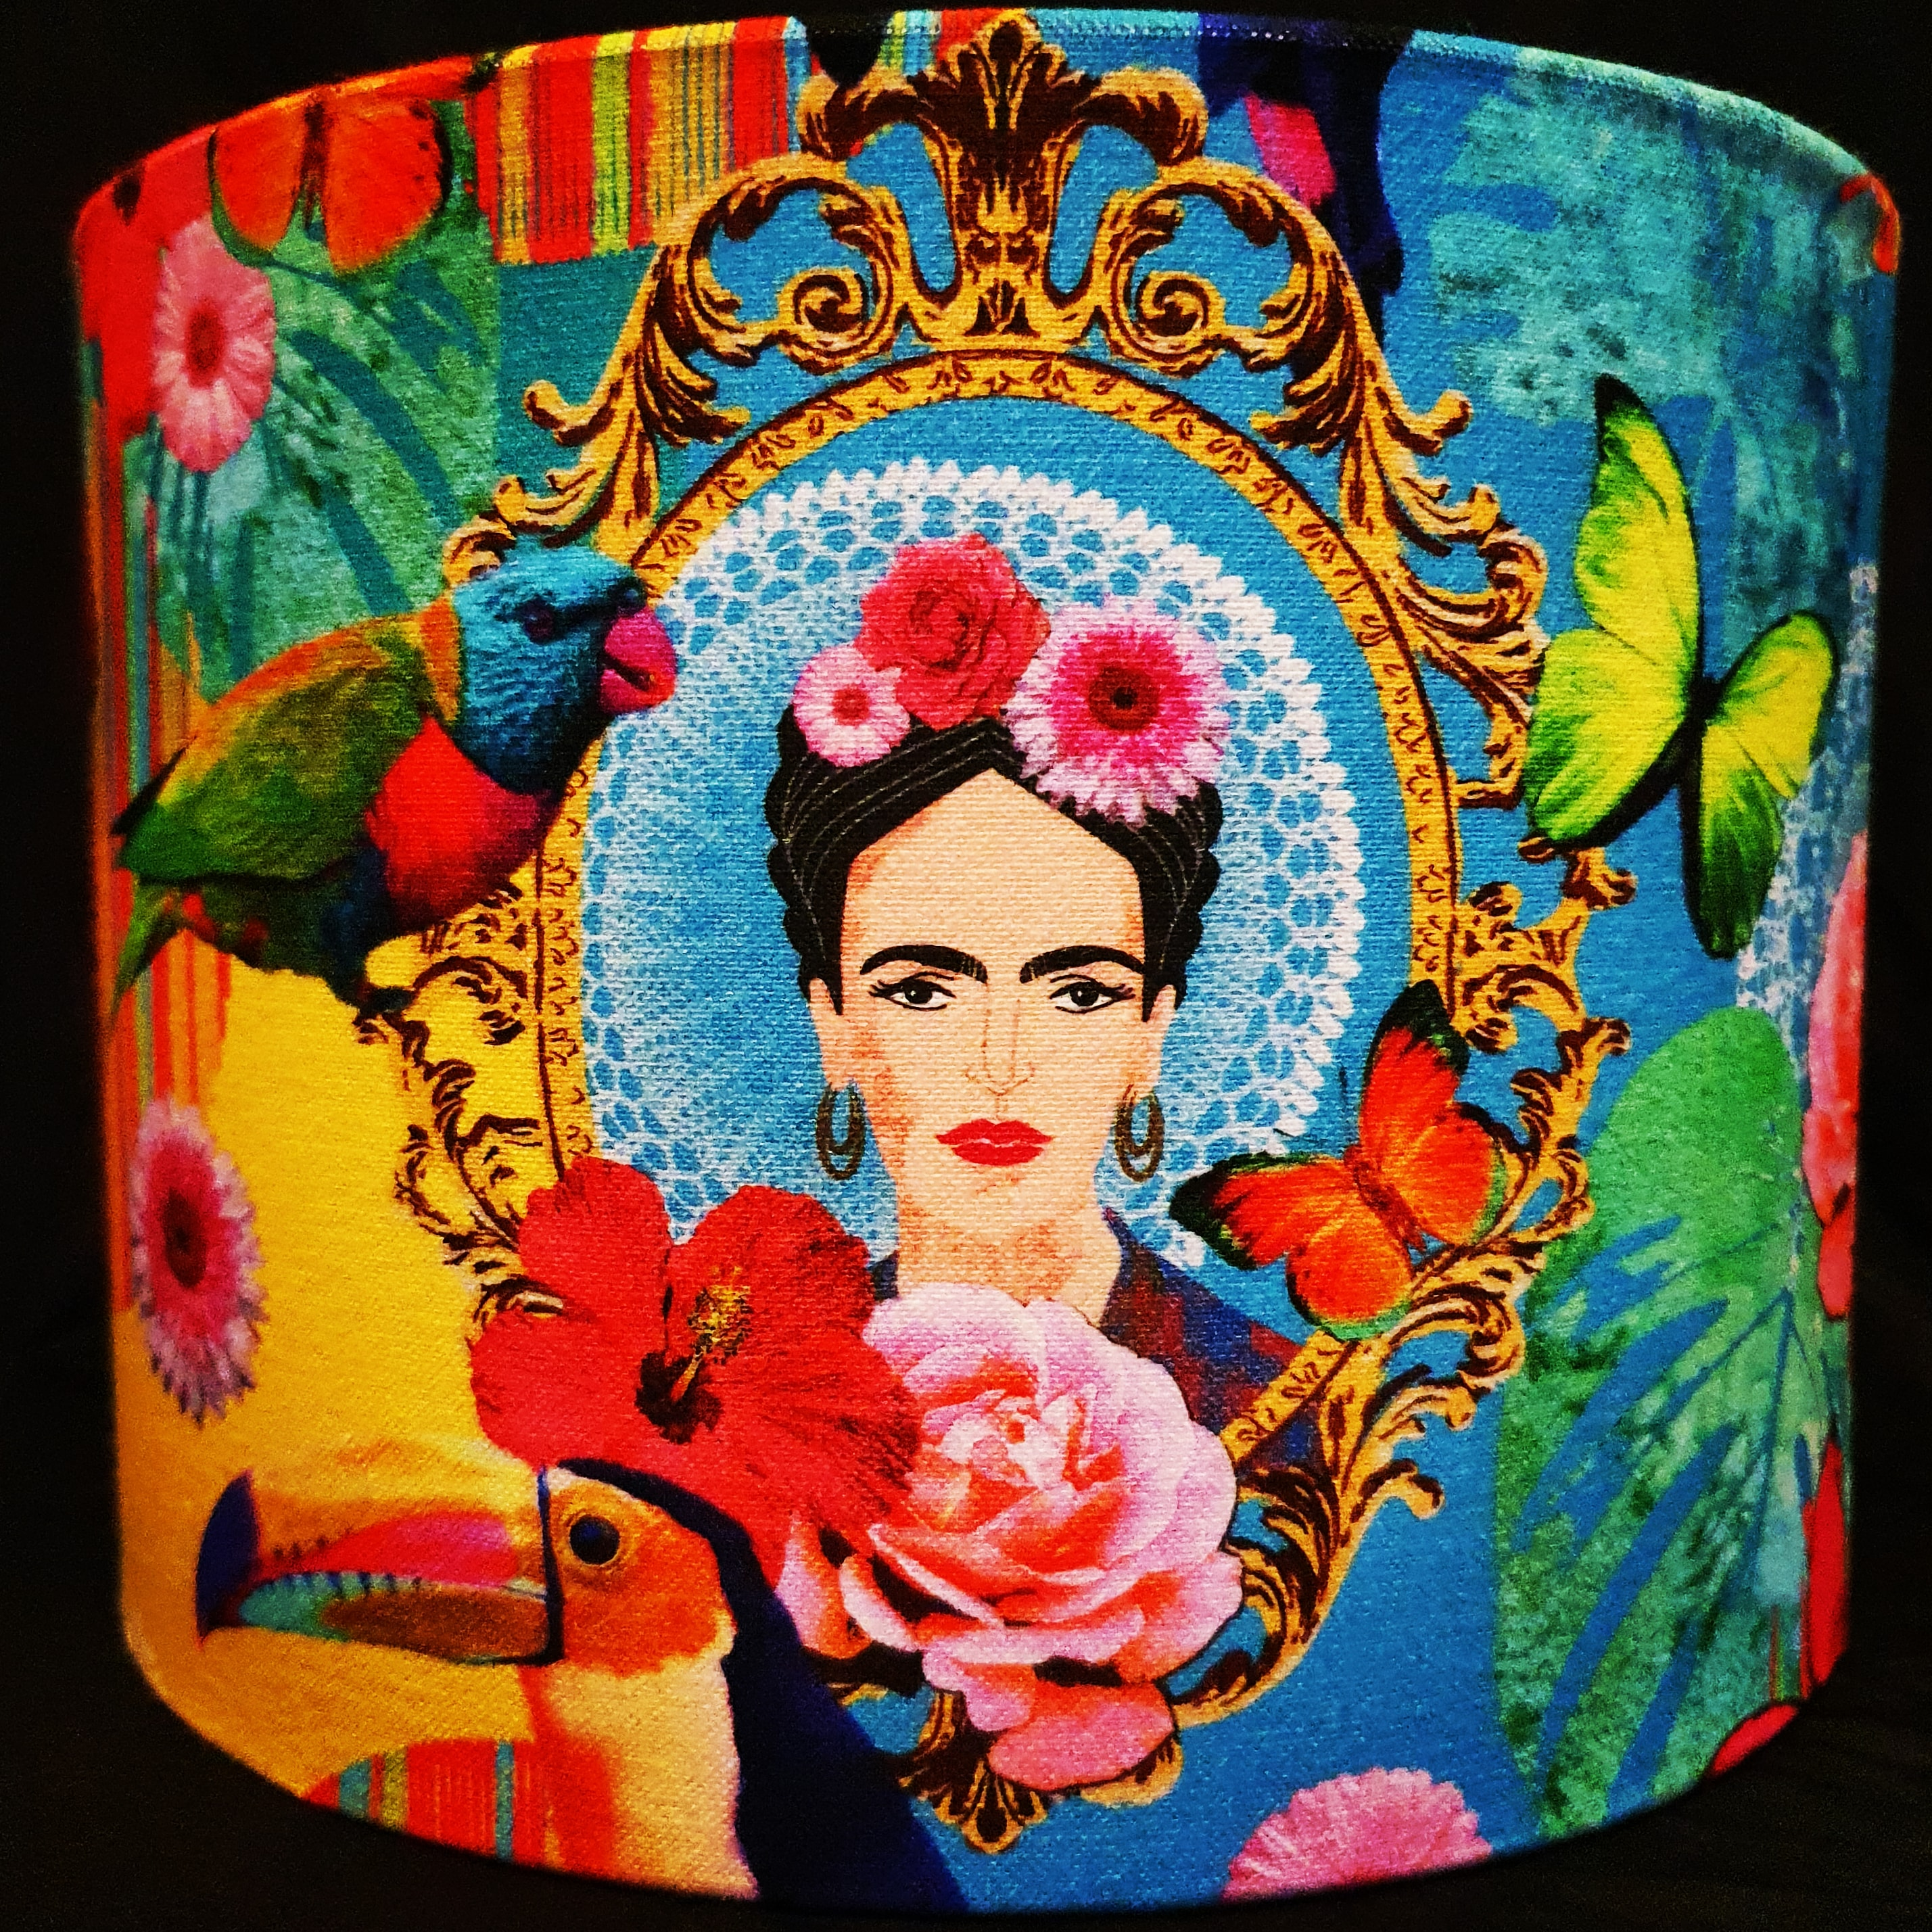 Frida tropical scene (blue backing)